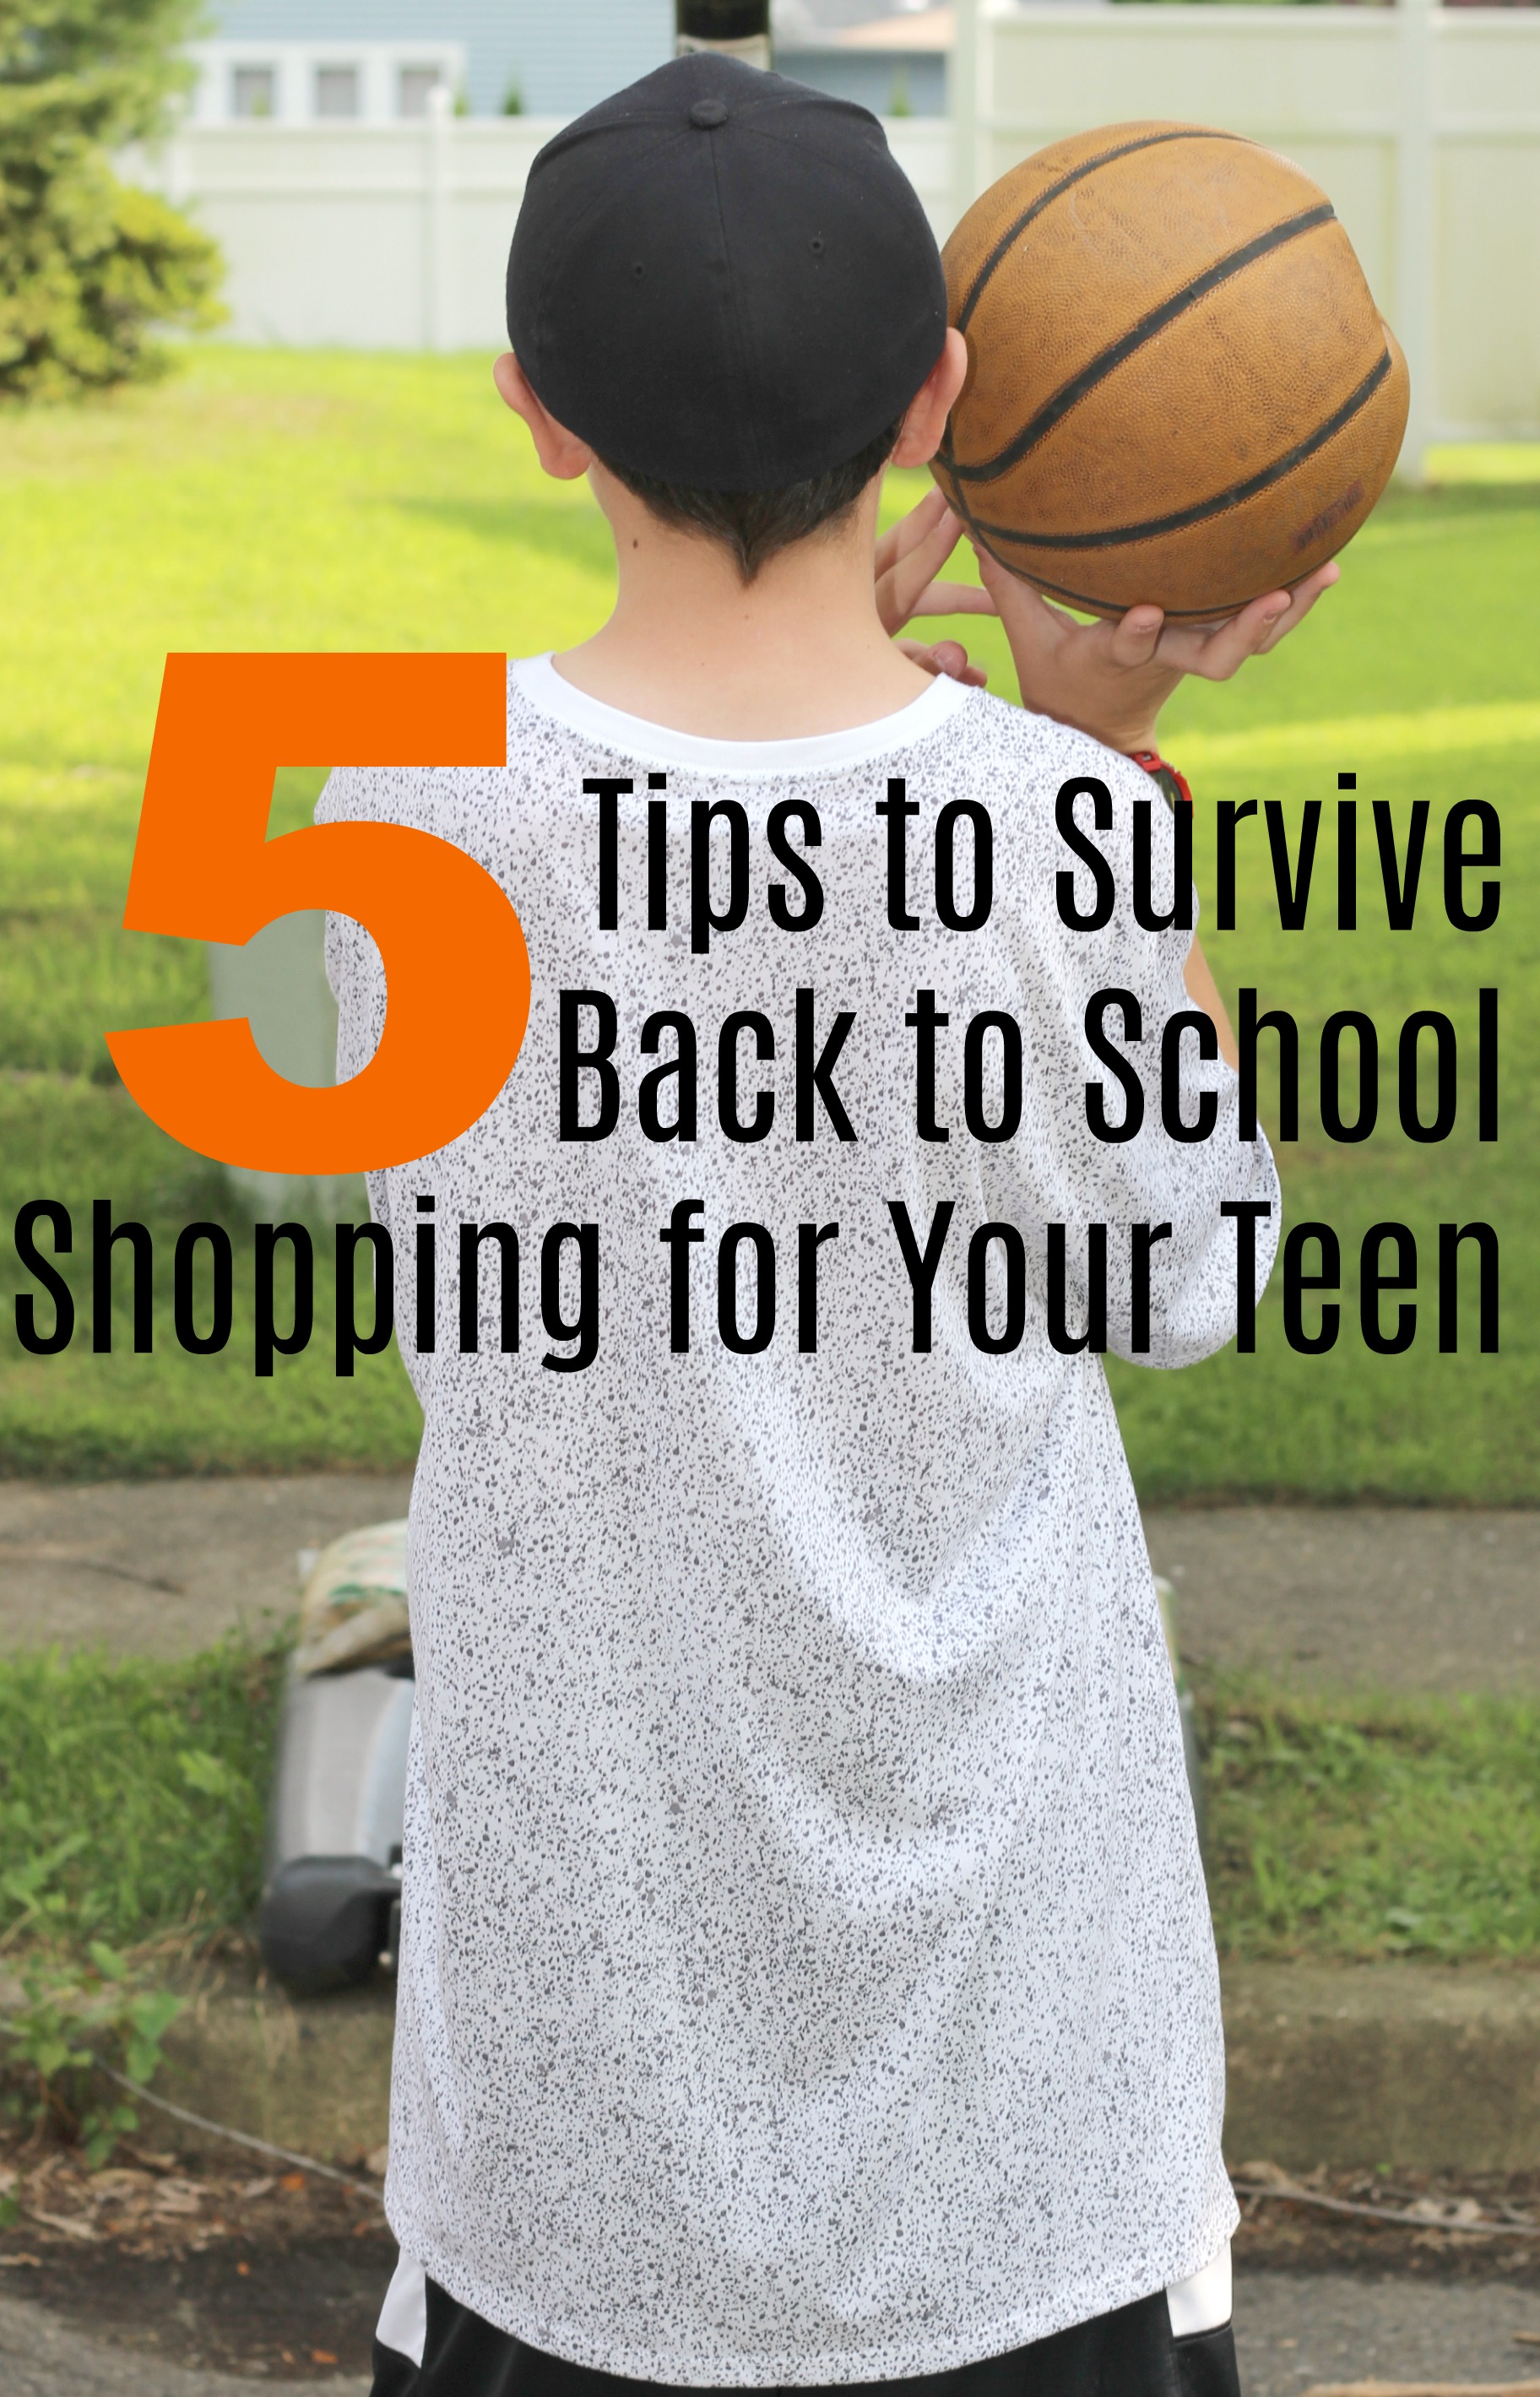 5 Tips to Survive Back to School Shopping for Your Teen